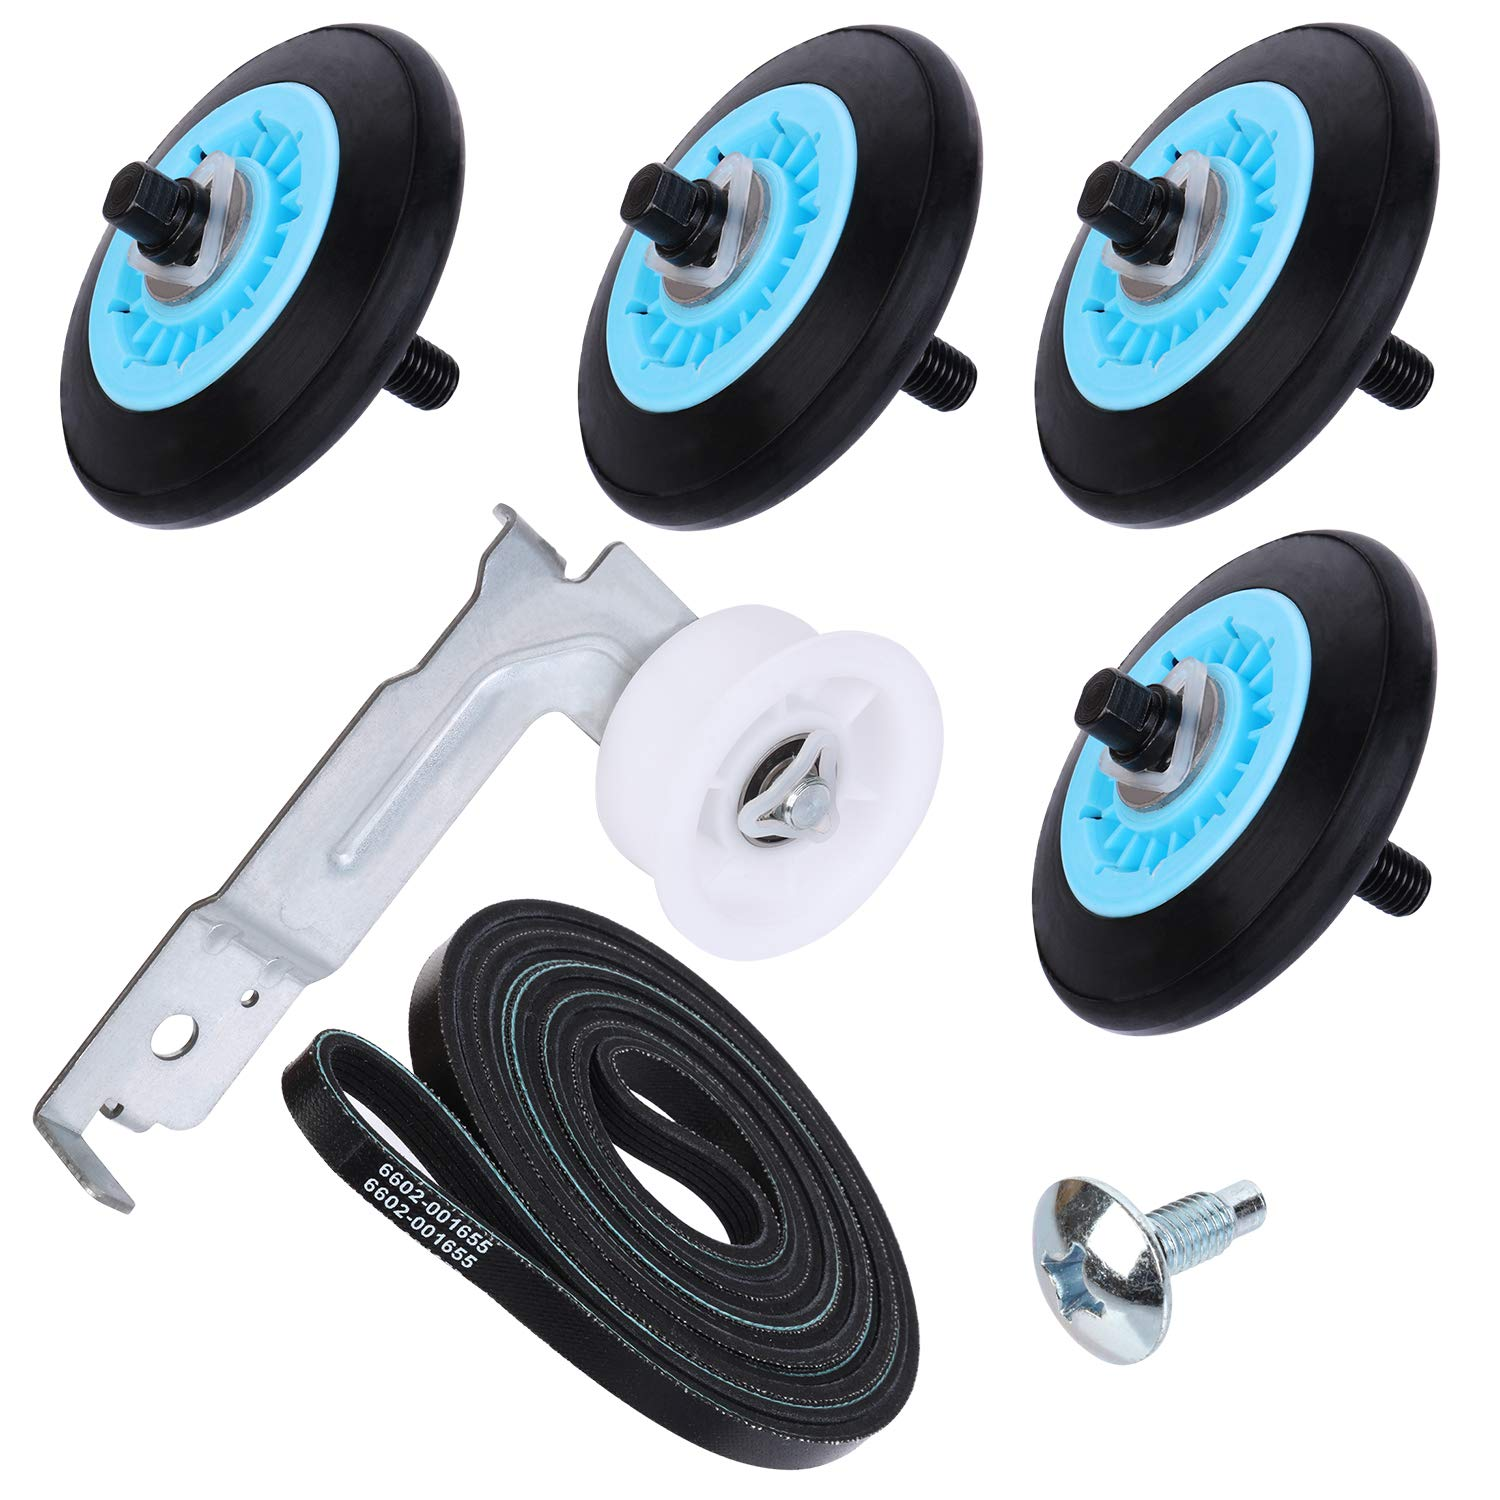 S-Union Replacement Dryer Repair Kit for Samsung - DC97-16782A Dryer Drum Support Roller, 6602-001655 Dryer Drum Belt and DC93-00634A Dryer Idler Pulley Replace AP5325135 AP4373659 AP6038887 PS4221885